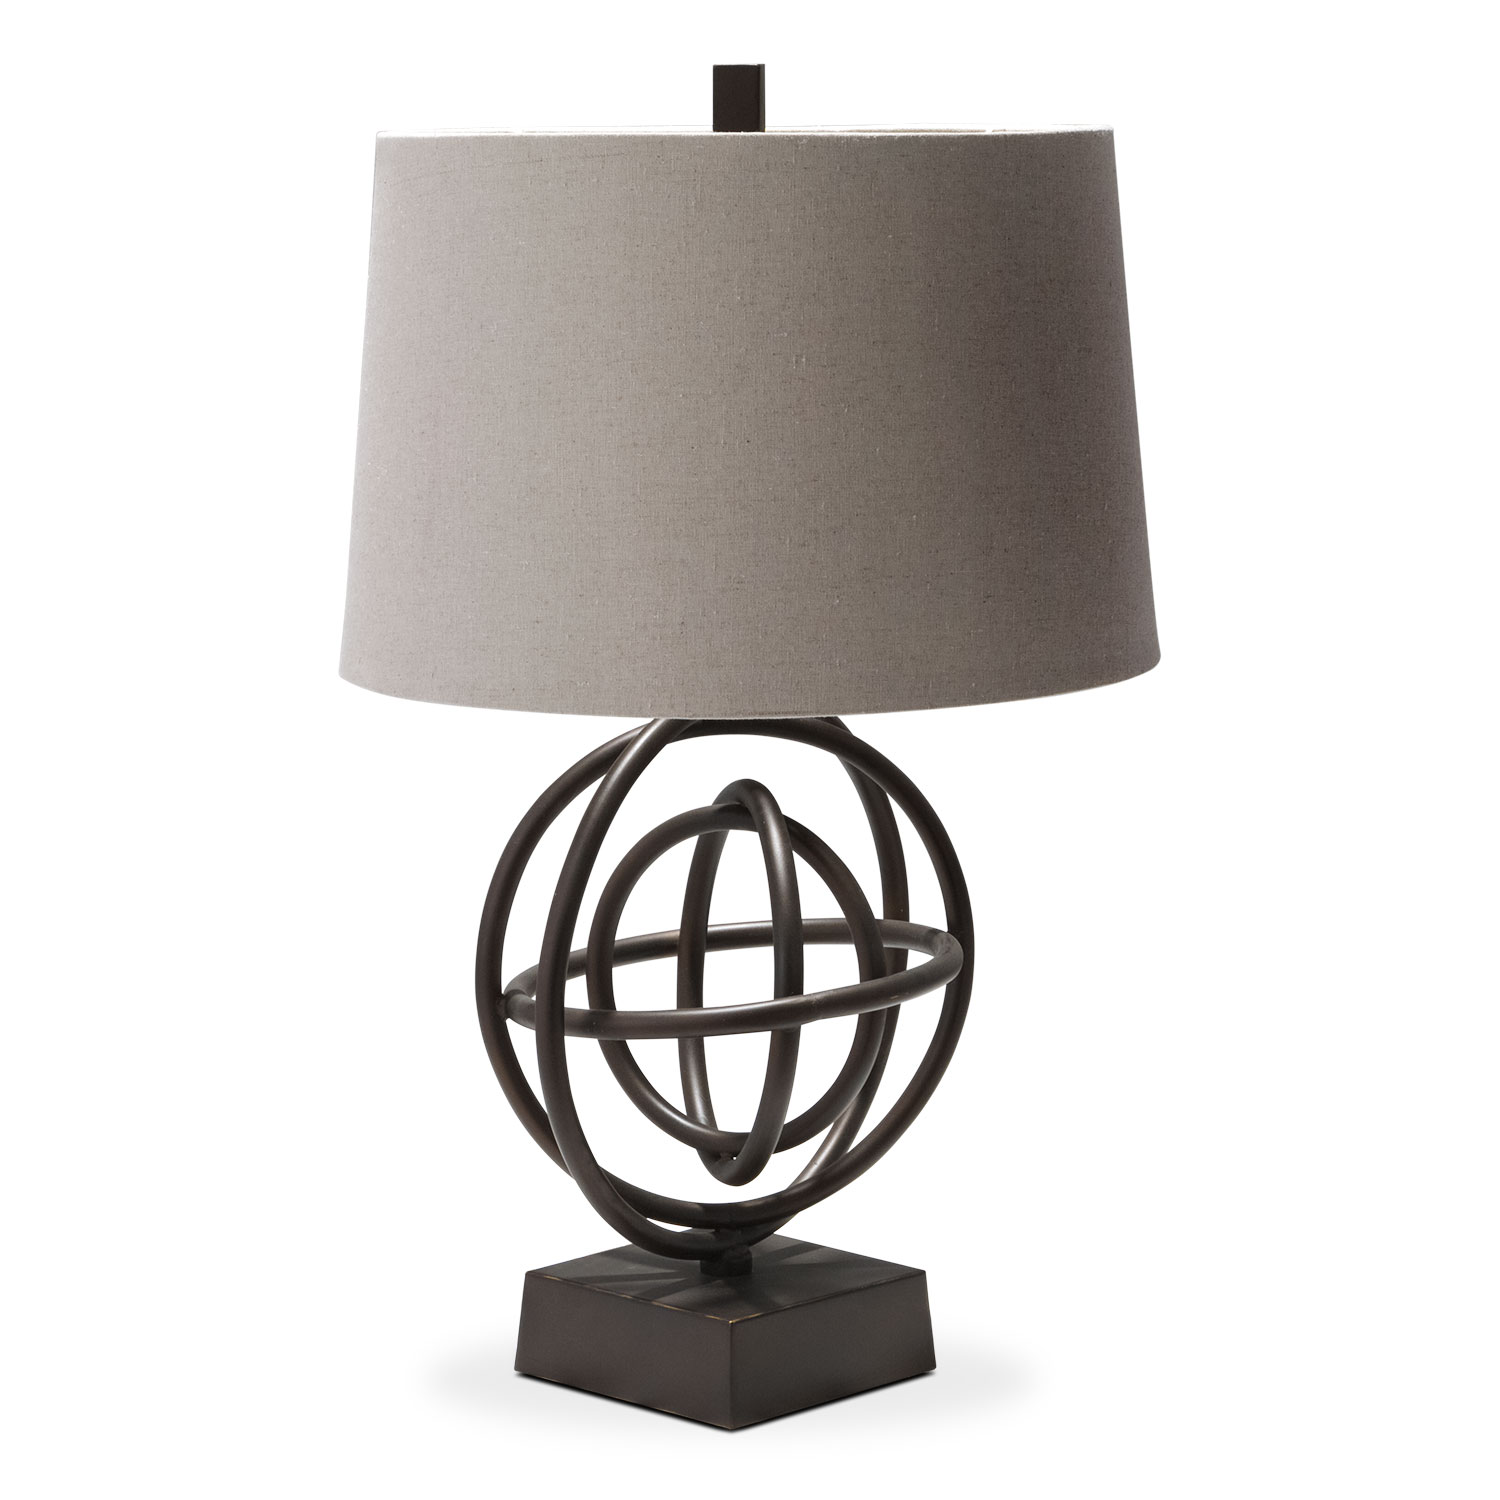 Home Accessories - Circles Table Lamp